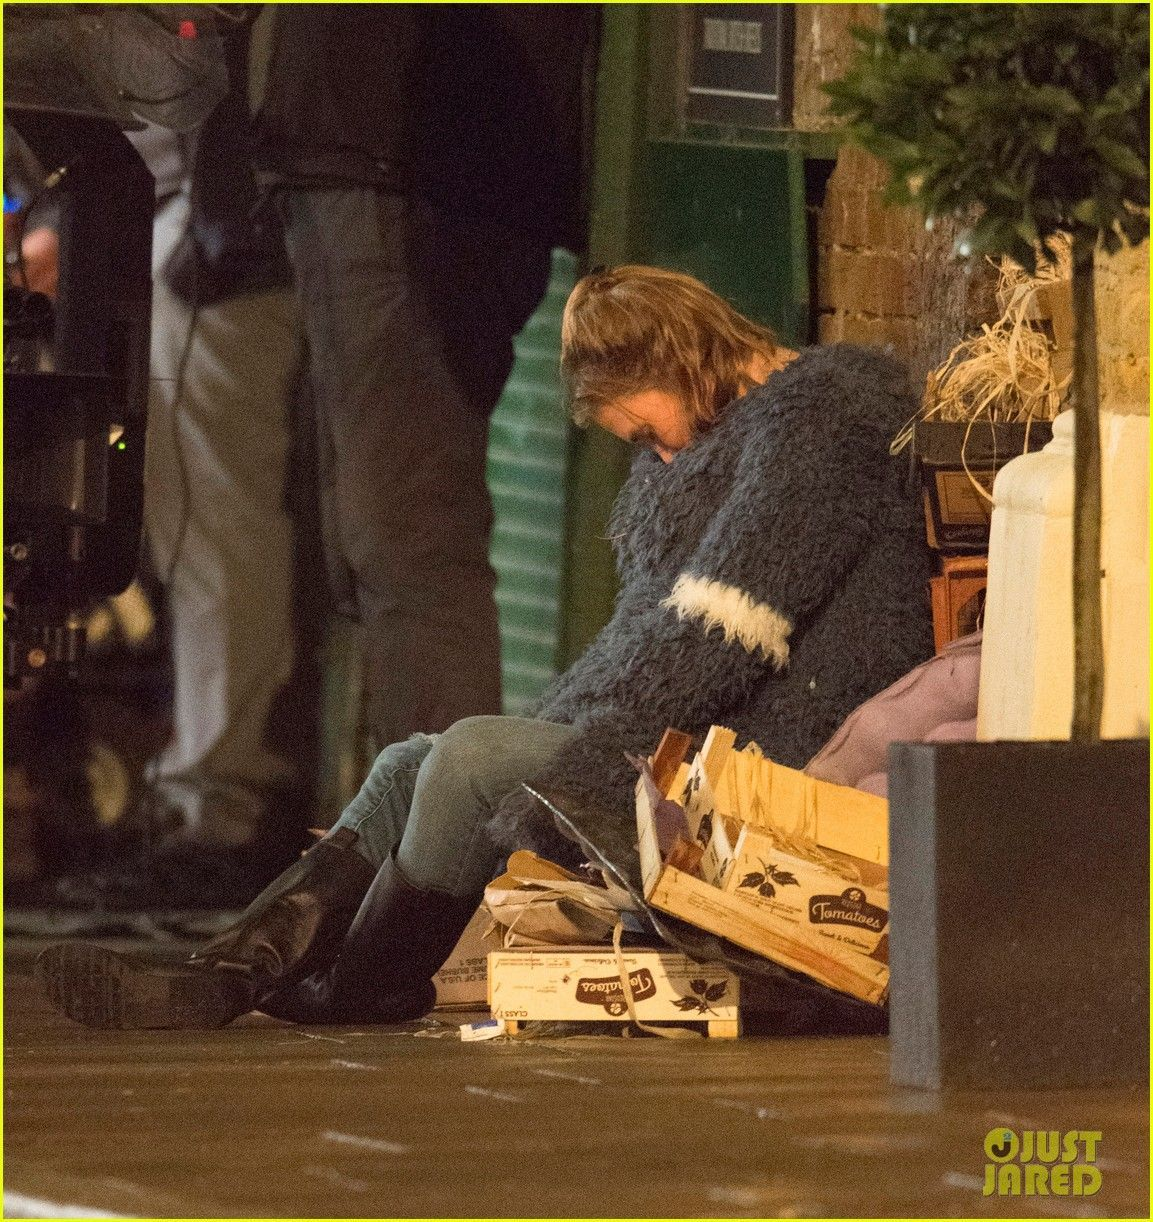 Renee Zellweger on the set of Bridget Jones's Baby in London, England on Tuesday (October 13, 2015) #bridgetjonesdiaryandbaby Renee Zellweger on the set of Bridget Jones's Baby in London, England on Tuesday (October 13, 2015) #bridgetjonesdiaryandbaby